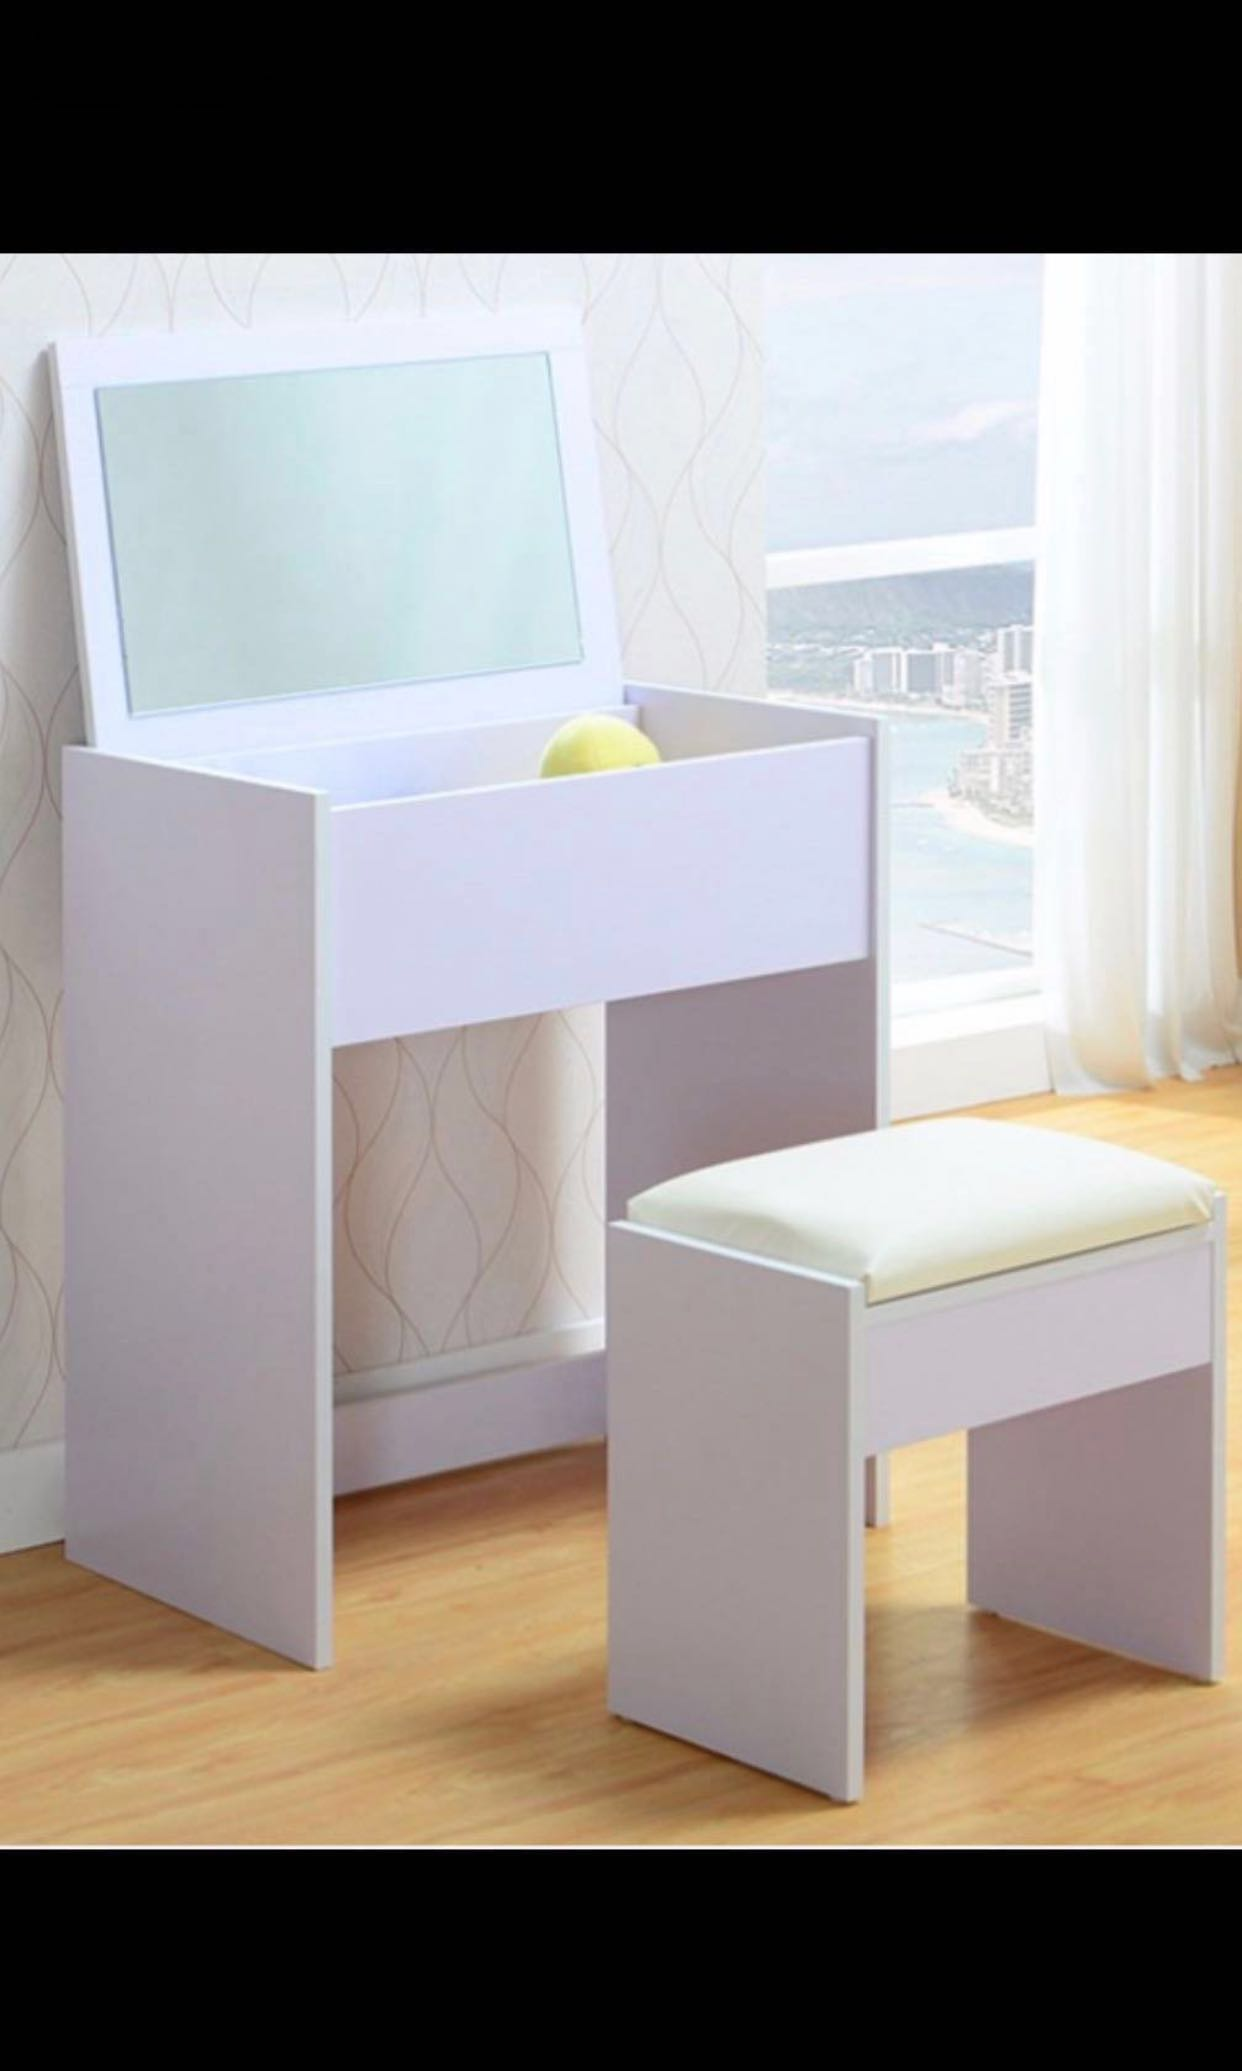 Modern minimalist dresser furniture tables chairs on carousell